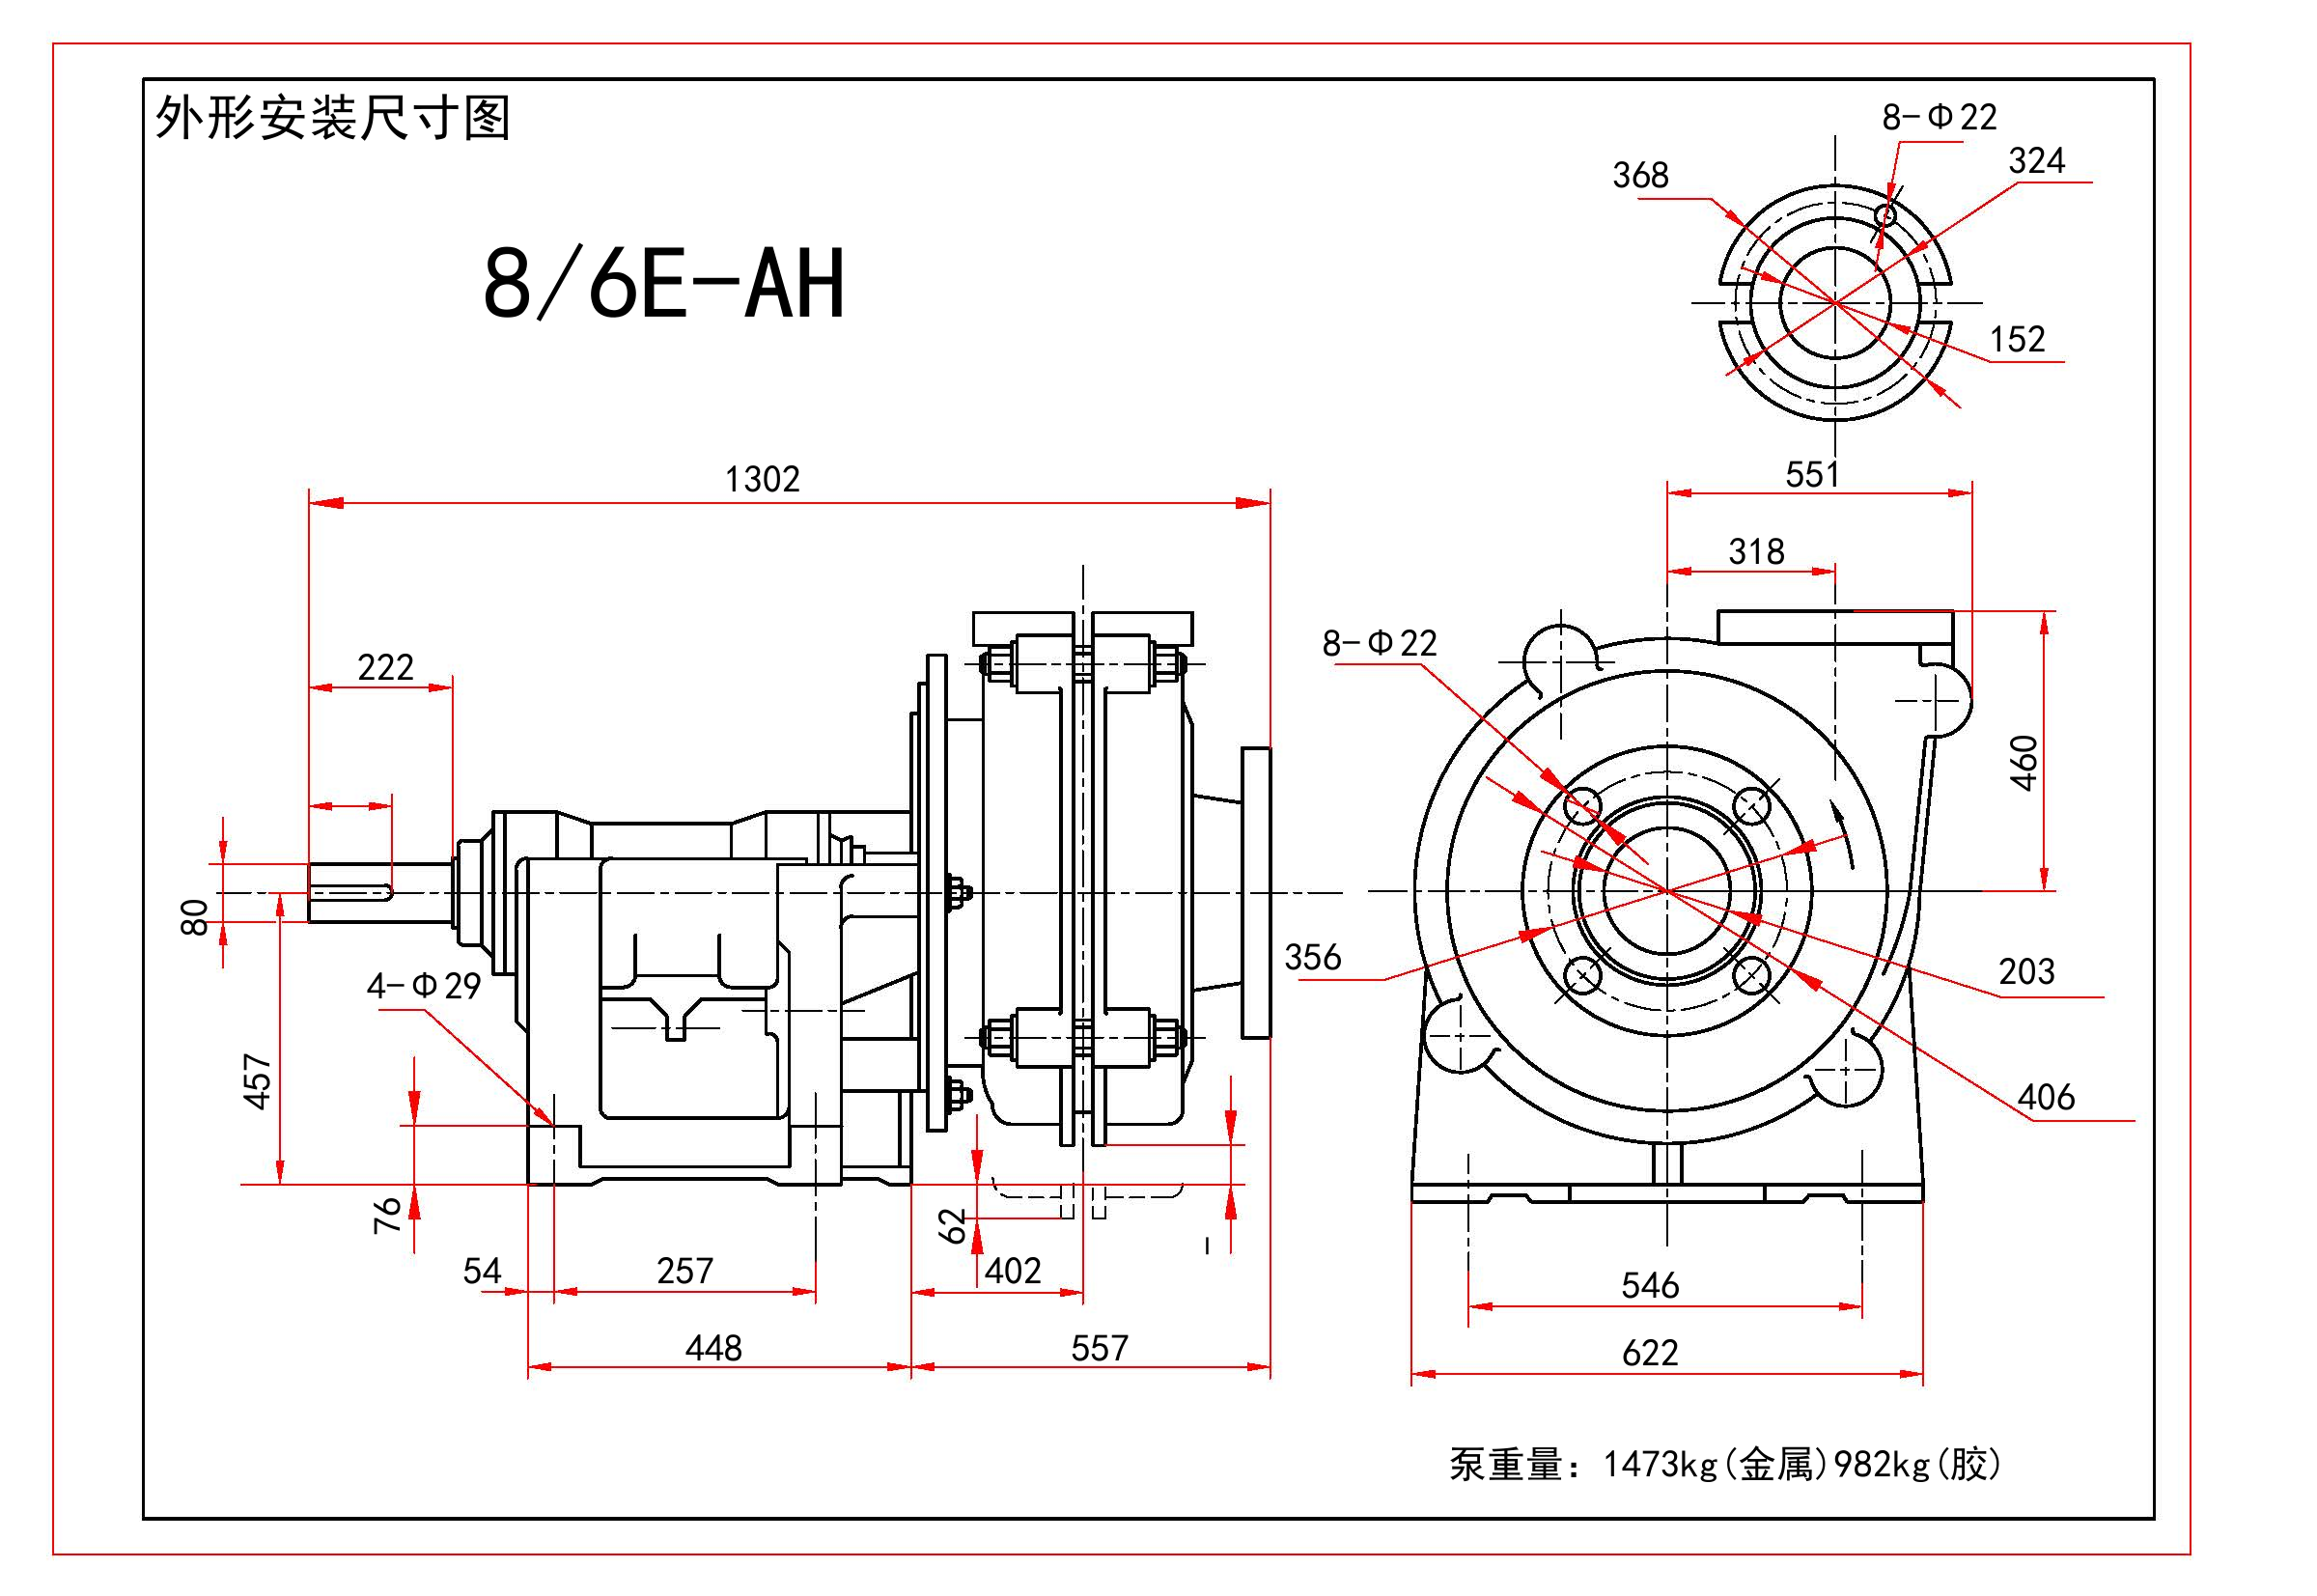 8/6E-AH Slurry pump